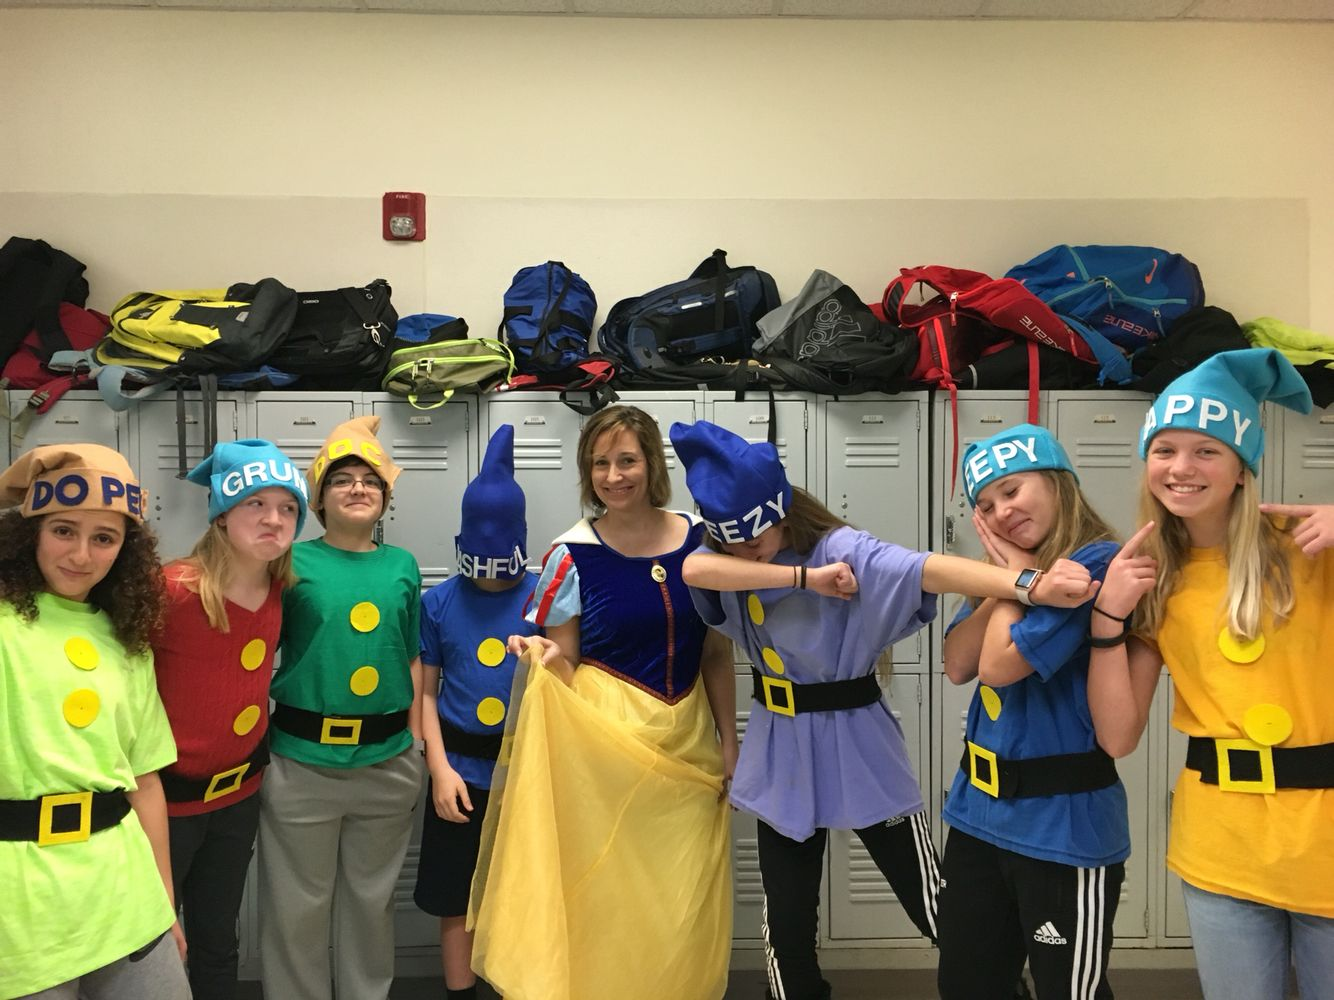 The 7 Dwarves!!! So much fun for spirit week or any